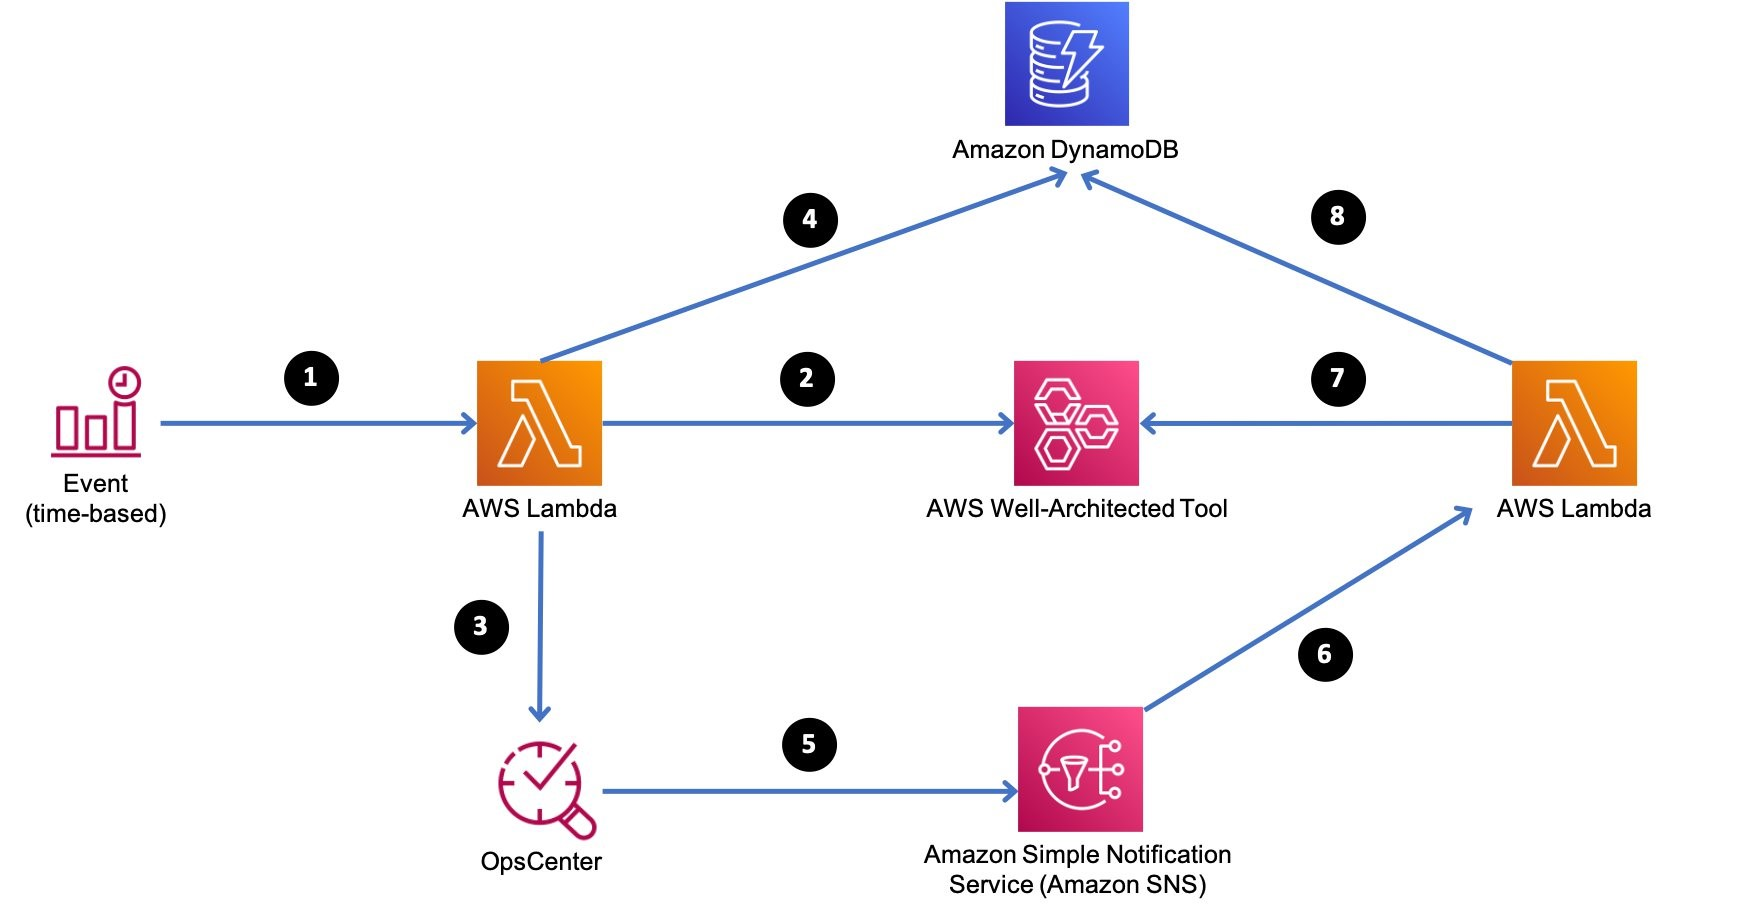 Numbered arrows show the interaction between the services used in the solution, including Lambda, DynamoDB, OpsCenter, and Amazon SNS. The flow is described in the post.